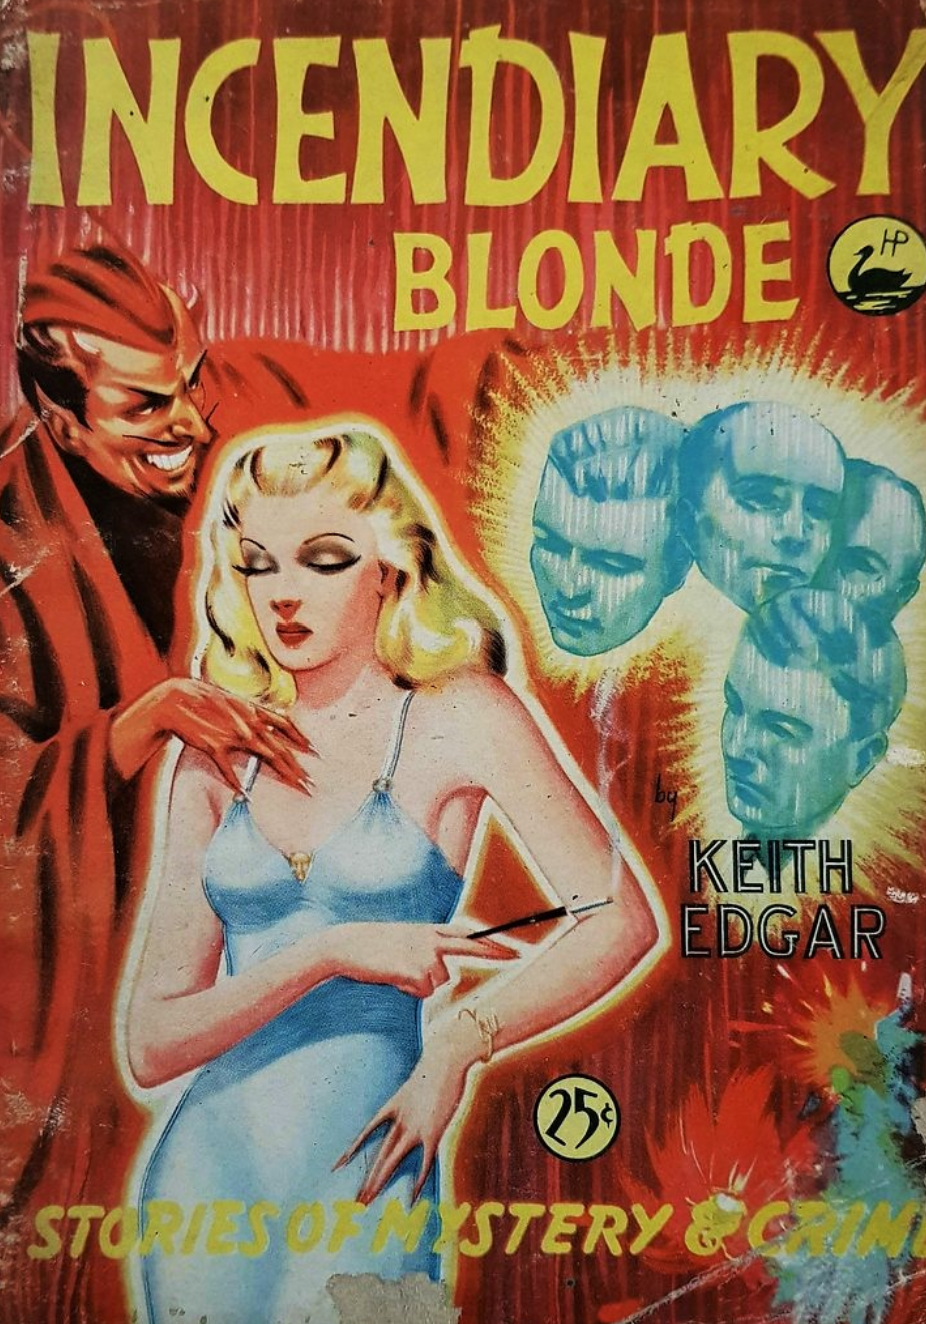 sloth unleashed — Incendiary Blonde Howard Publications